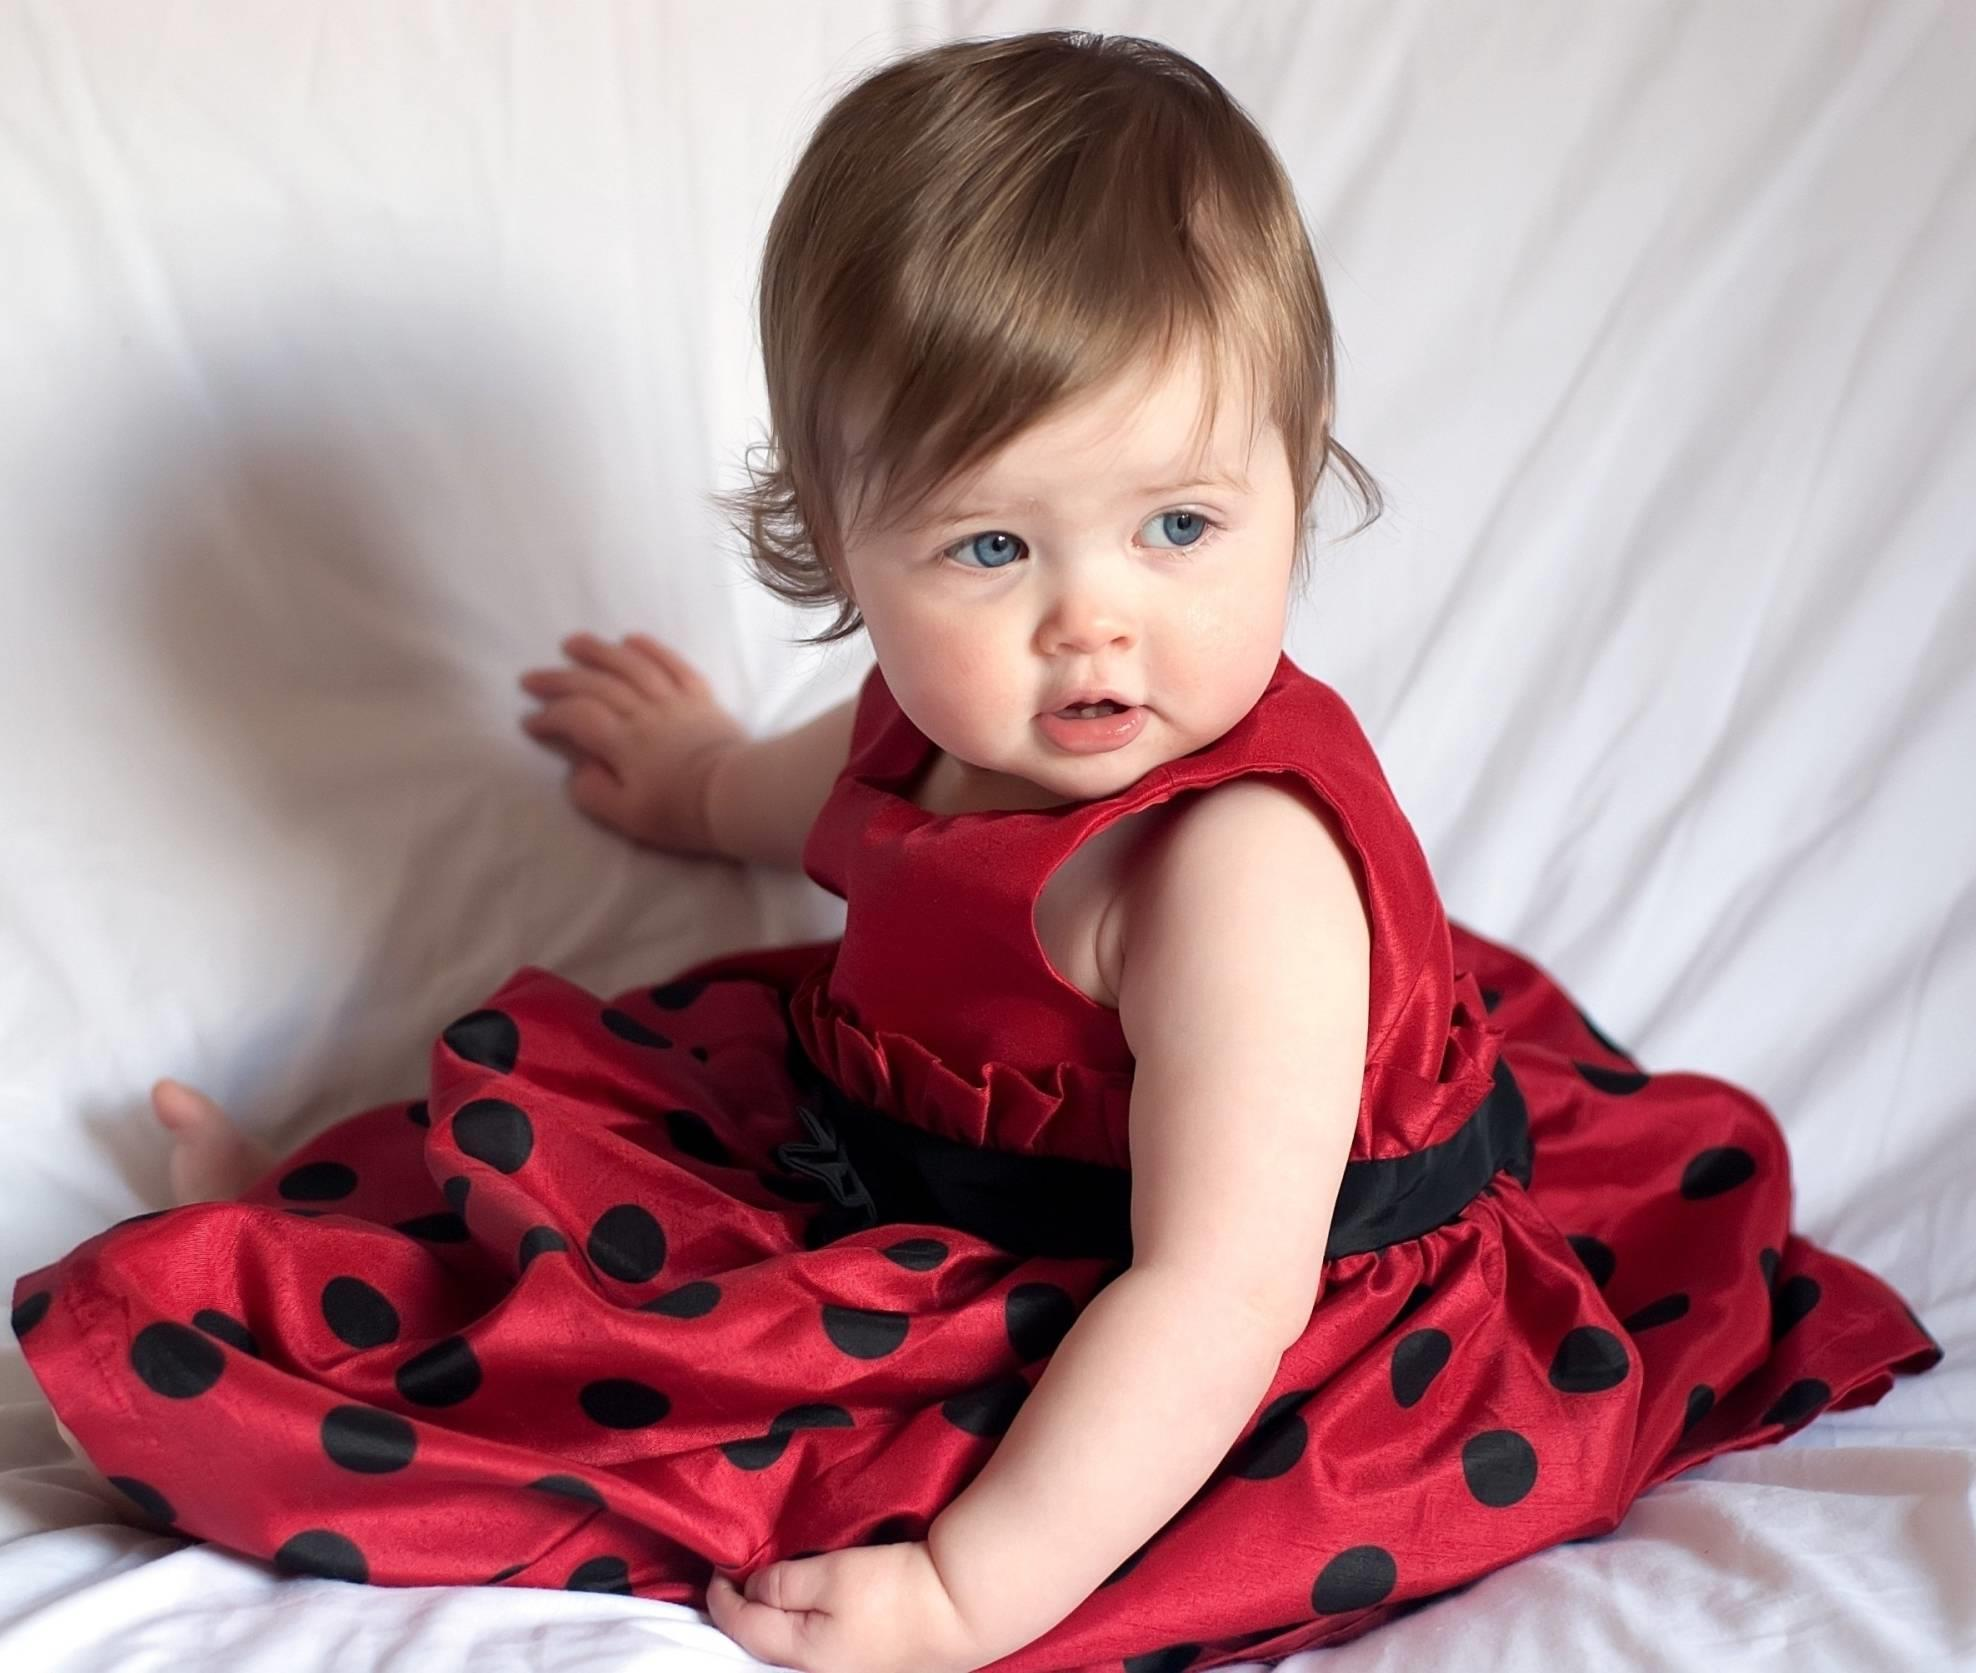 Cutest Baby Girl Red Frock Laughspark Com